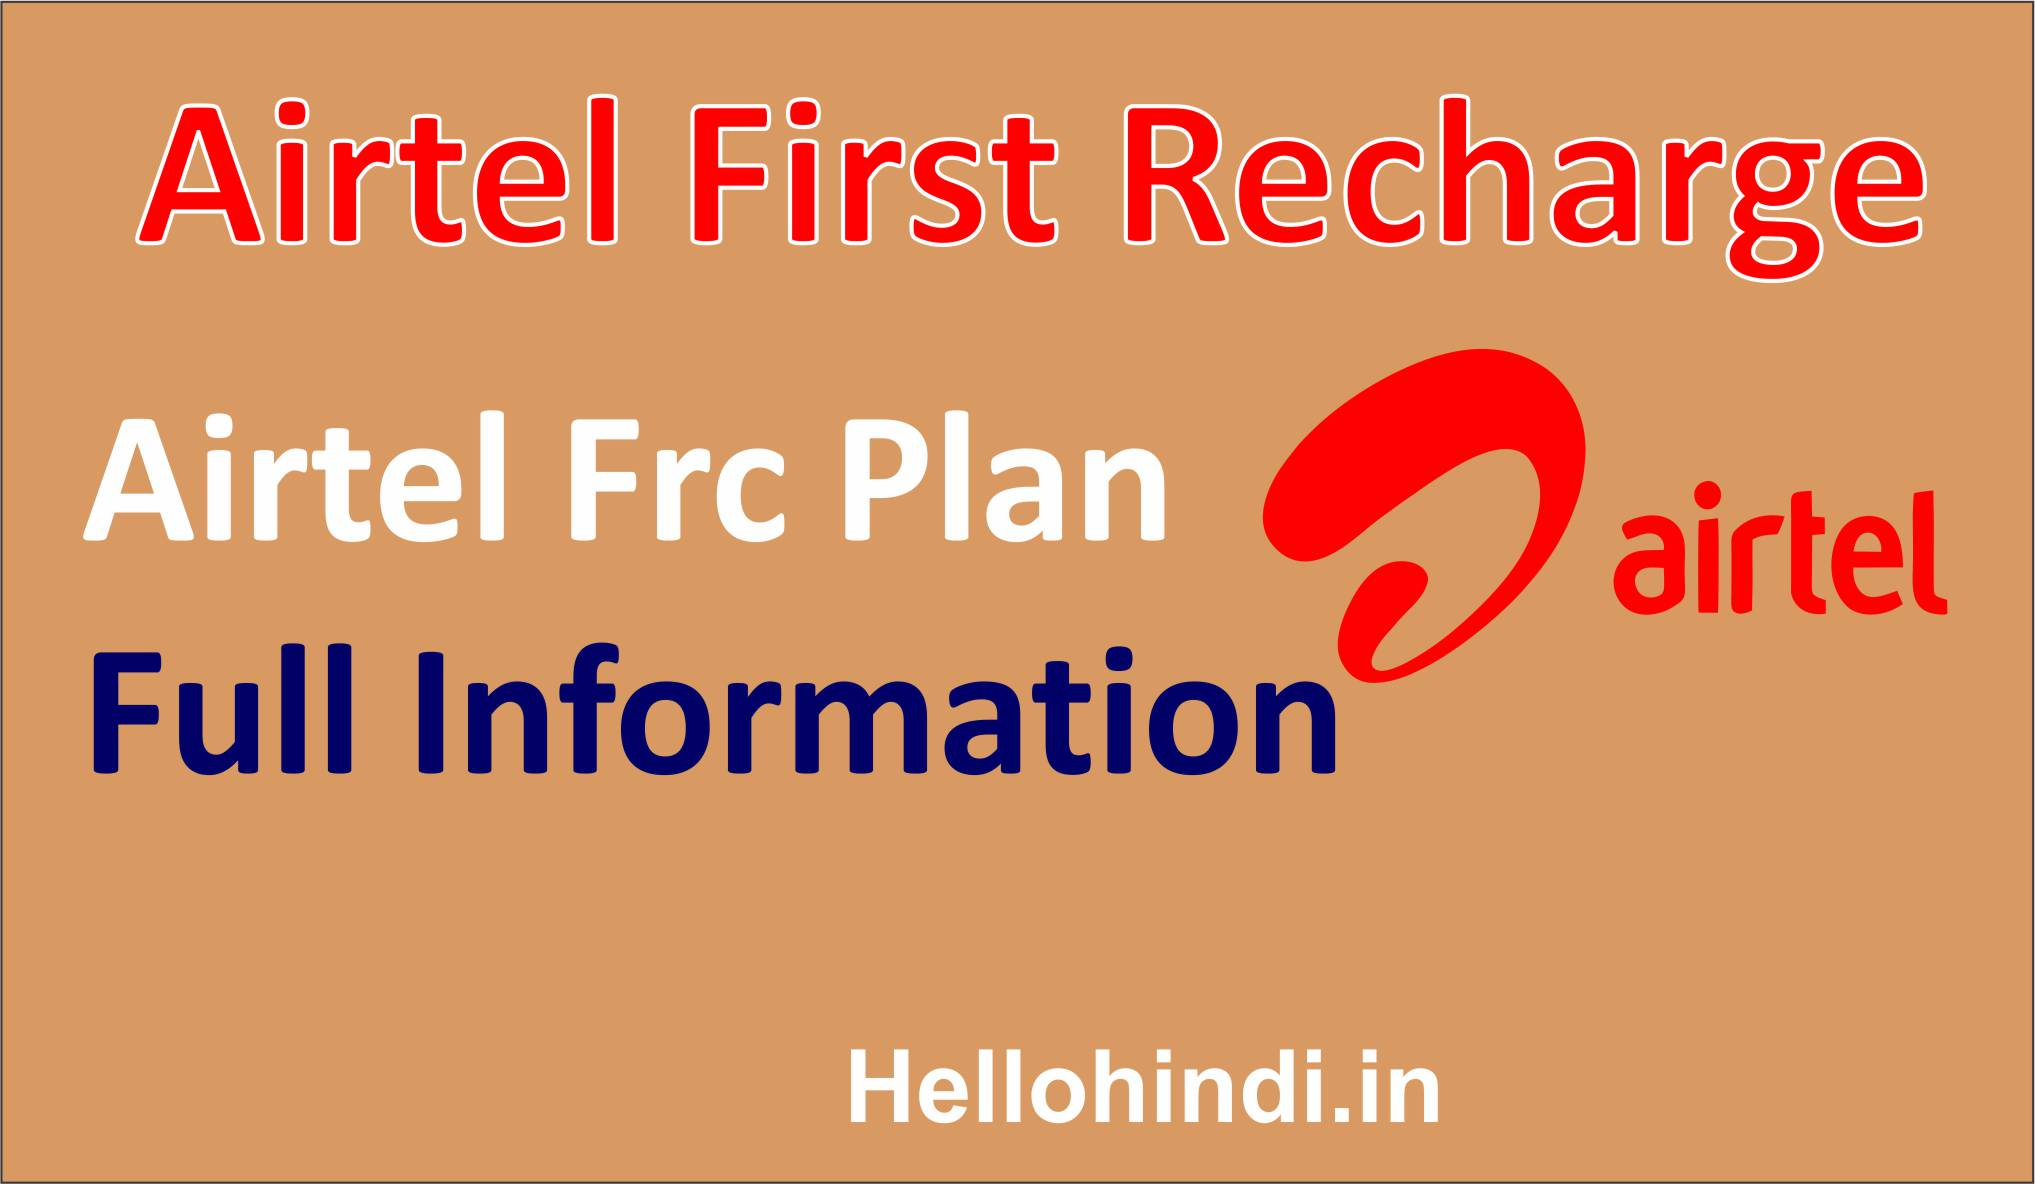 Airtel First Recharge Airtel Frc Plan With Retailer Commission